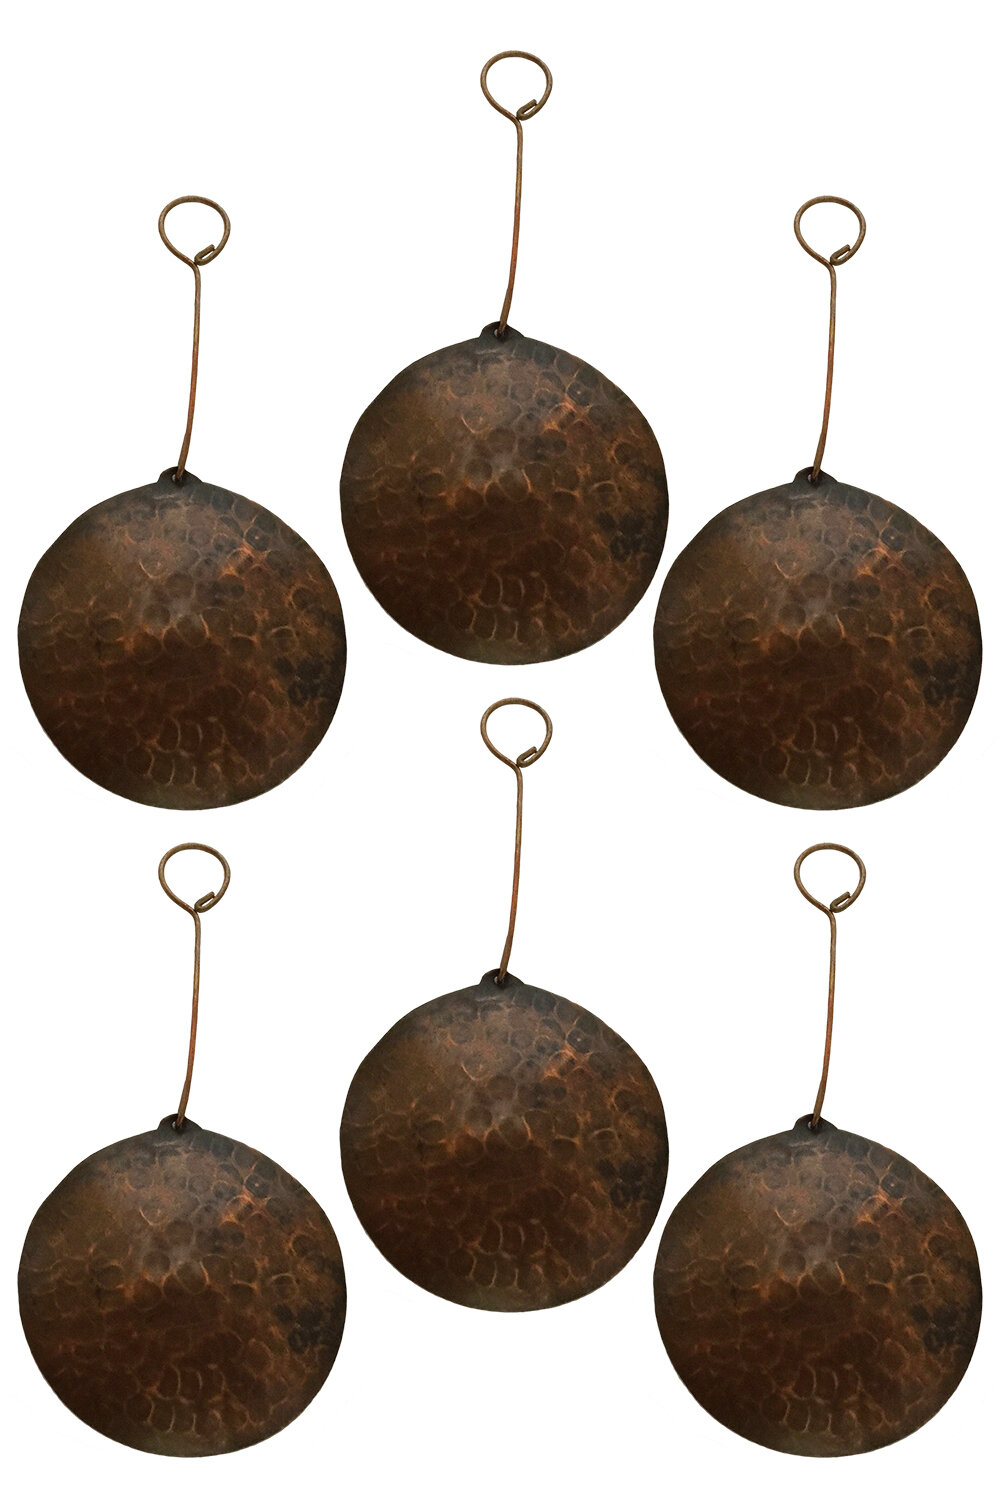 Copper Christmas Ornaments.Hand Hammered Round Copper Christmas Ornament